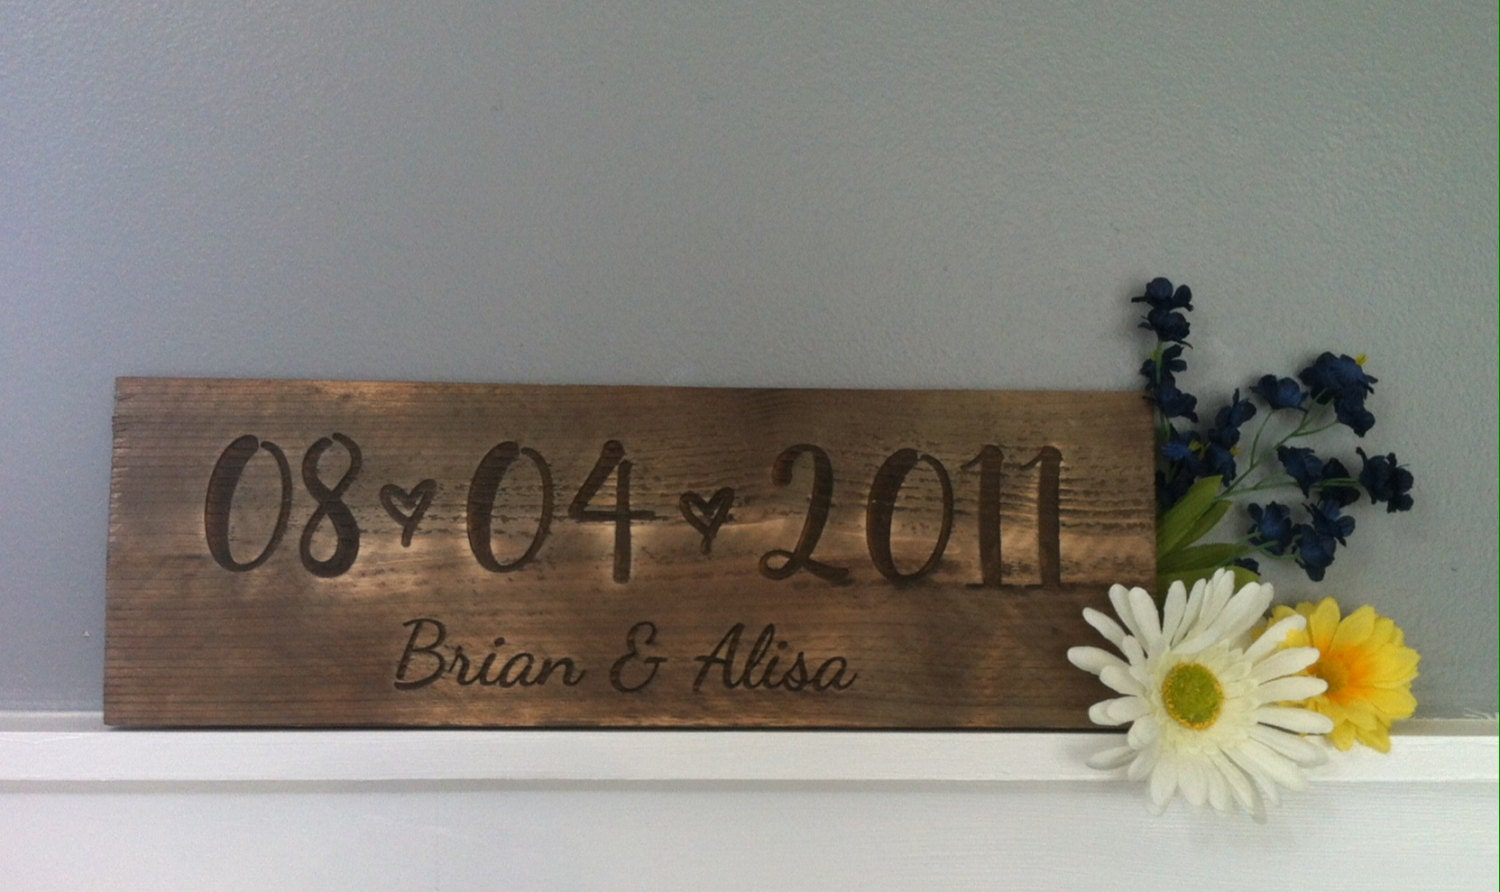 On Sale Rustic Wood Sign Wedding Decor Laser Engraved Established Date Anniversary Gift Rustic